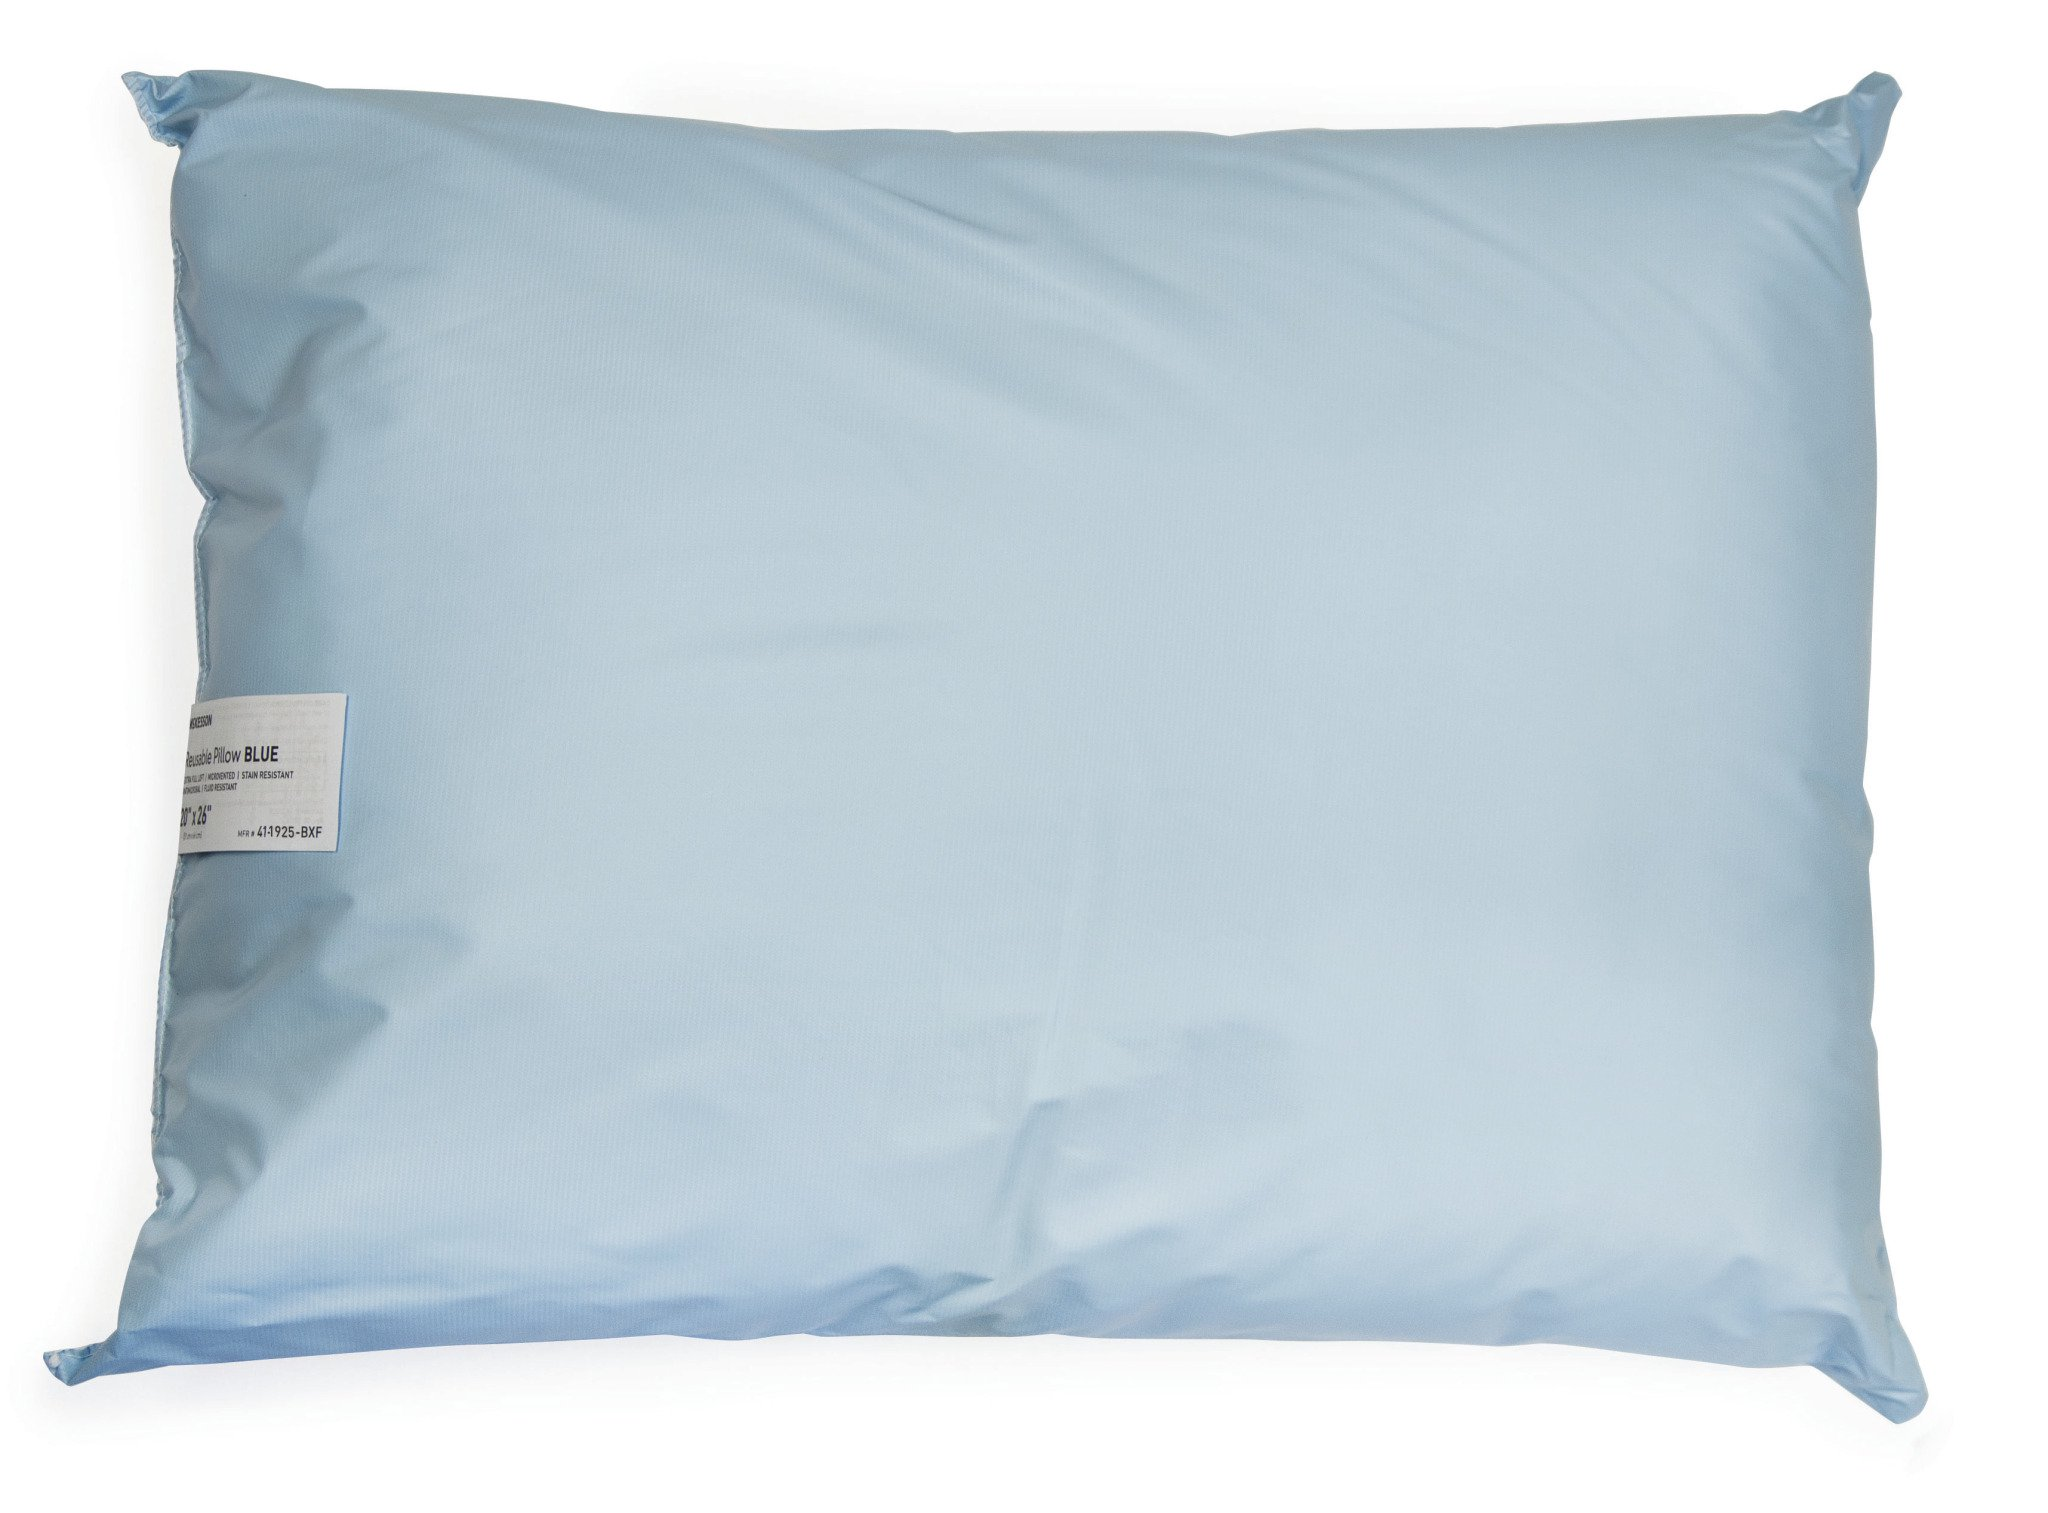 Bed Pillow, McKesson, 19 X 25 Inch Blue Reusable, 41-1925-BXF - Case of 12